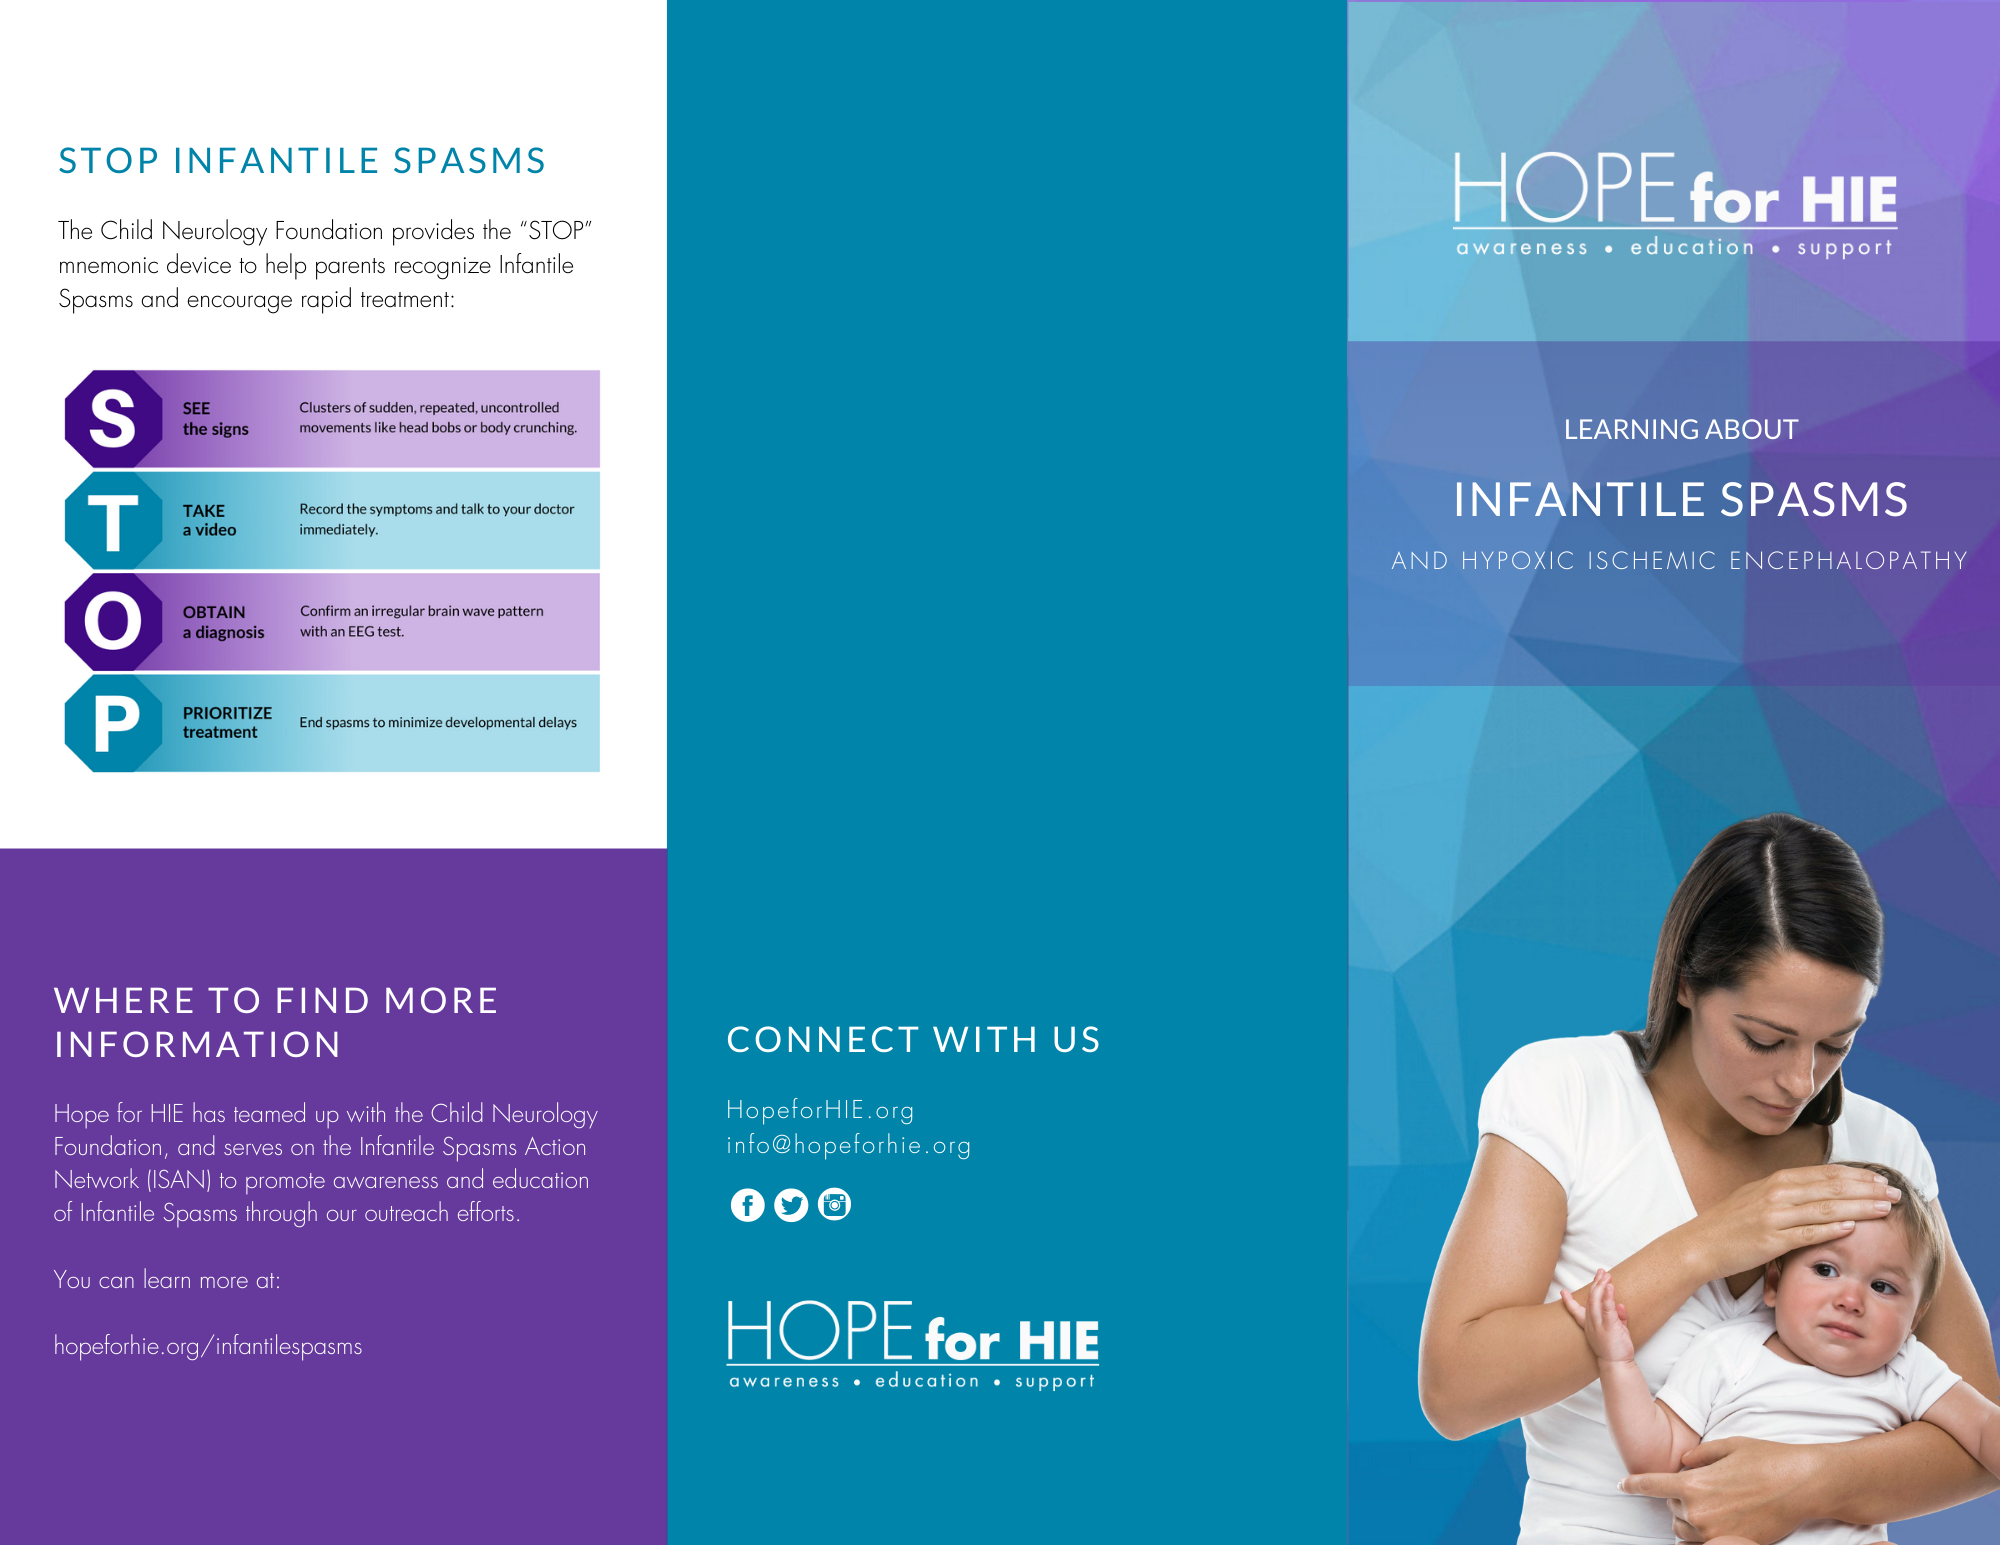 Infantile_Spasms_Awareness_-_Patient_Brochure.png